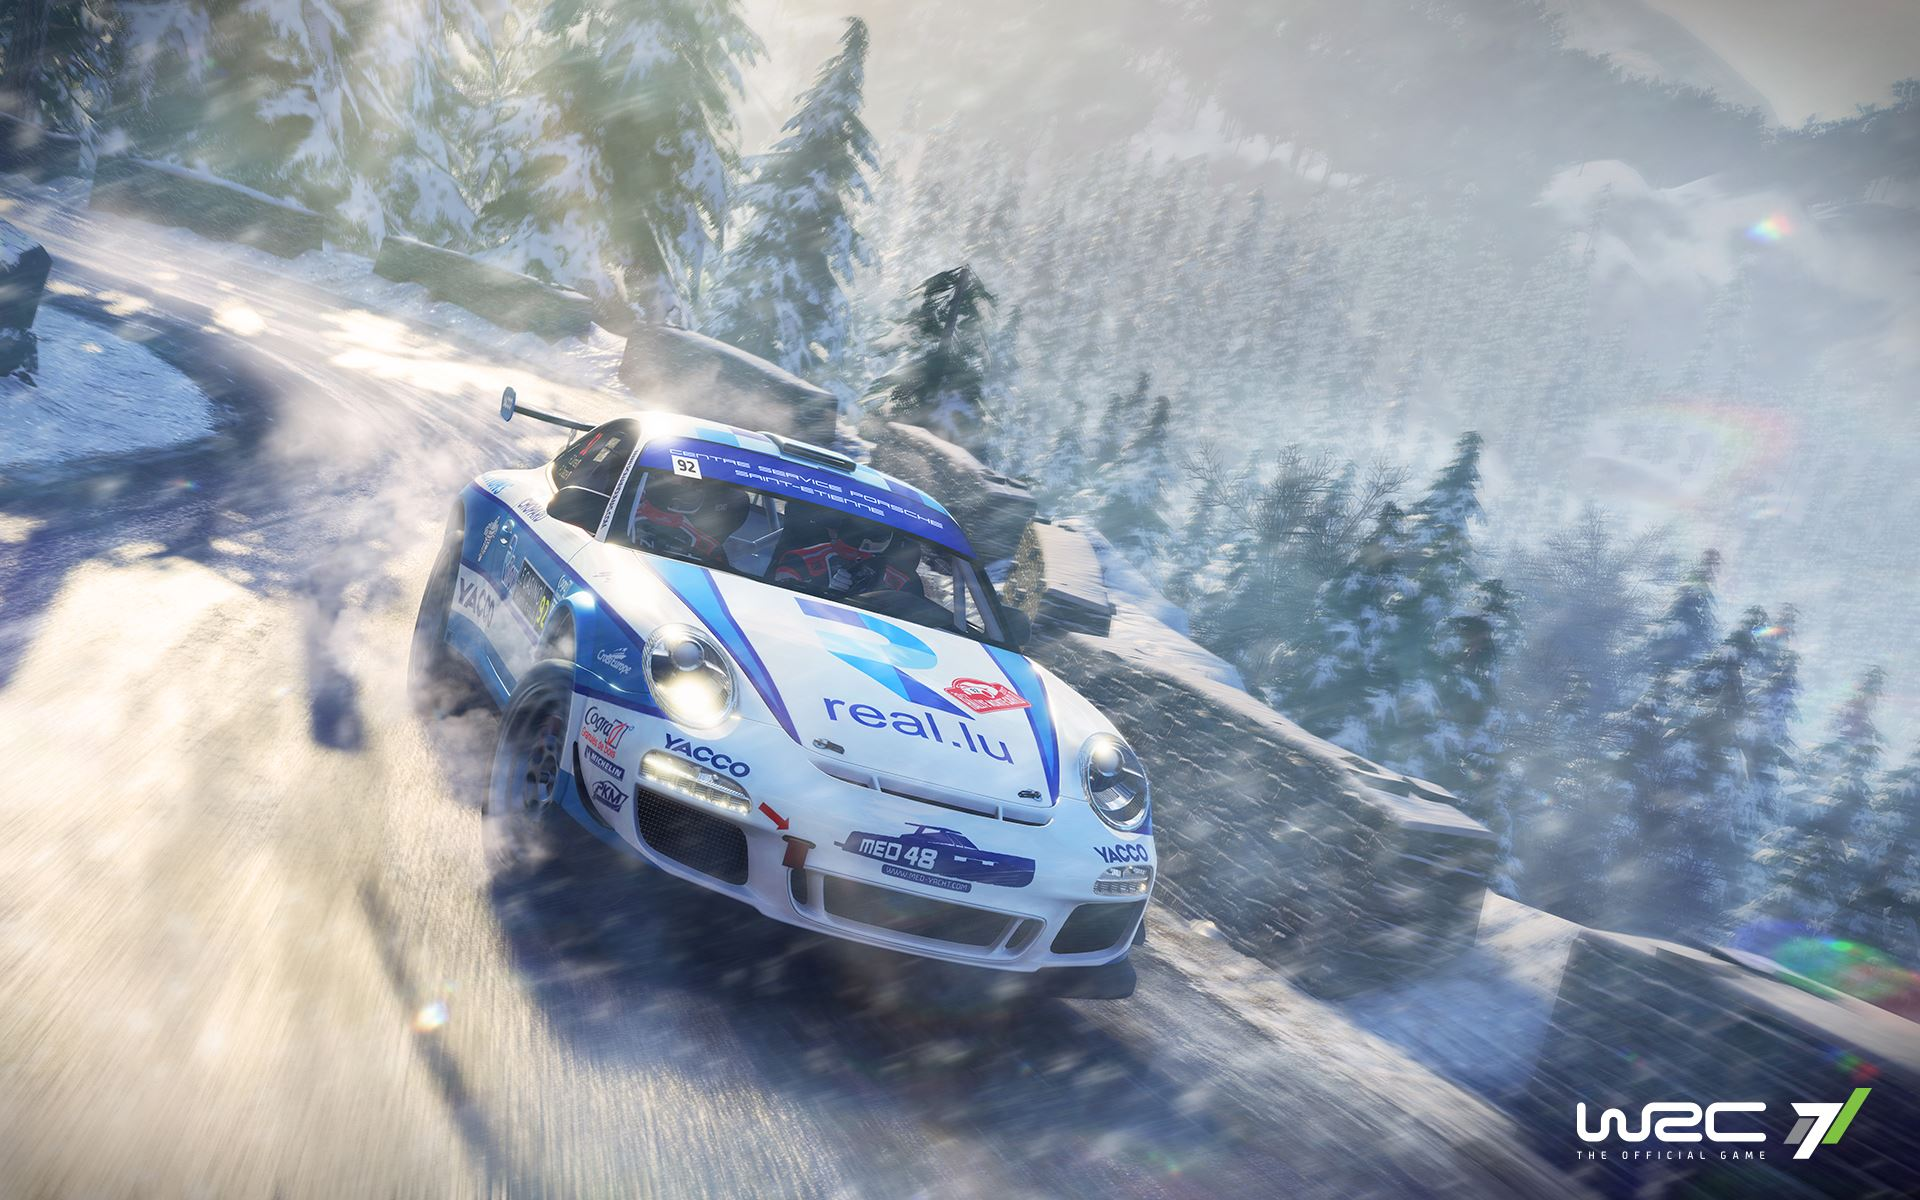 Porsche 911 R Gt Rally Car Announced As Wrc 7 Pre Order Bonus Team Vvv